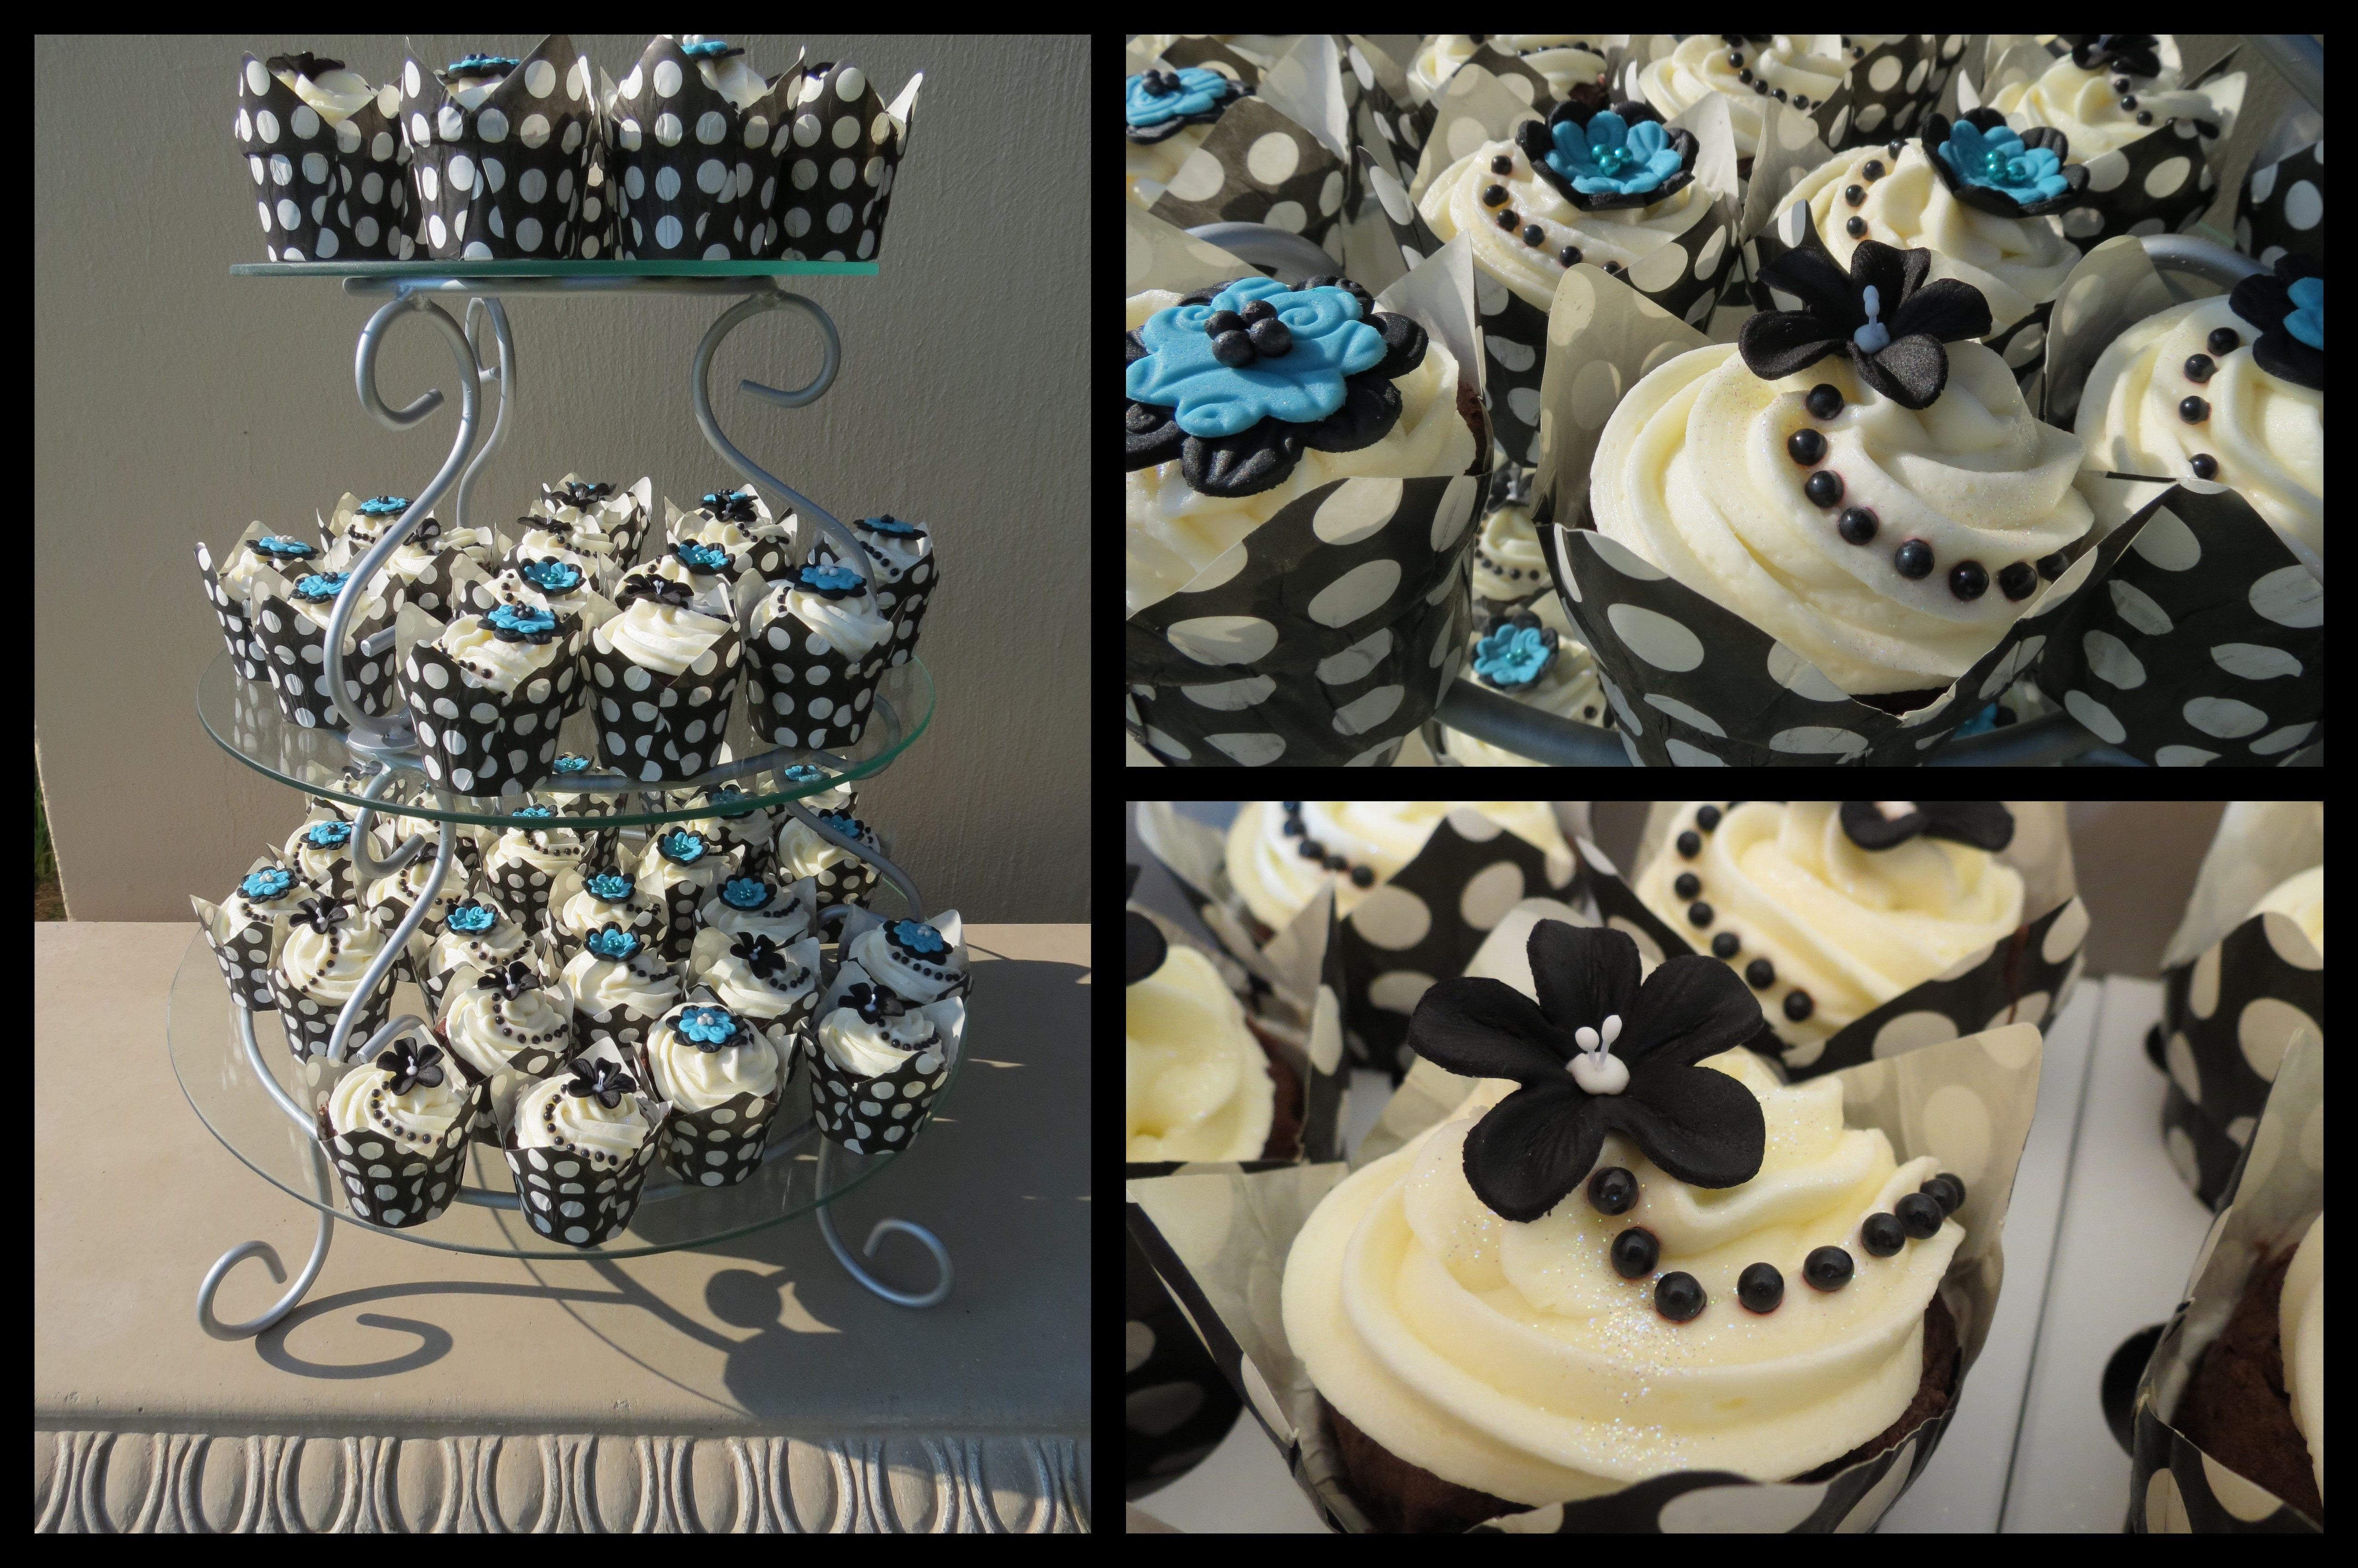 Turquoise and Black Wedding Cupcakes | cupcakes2delite